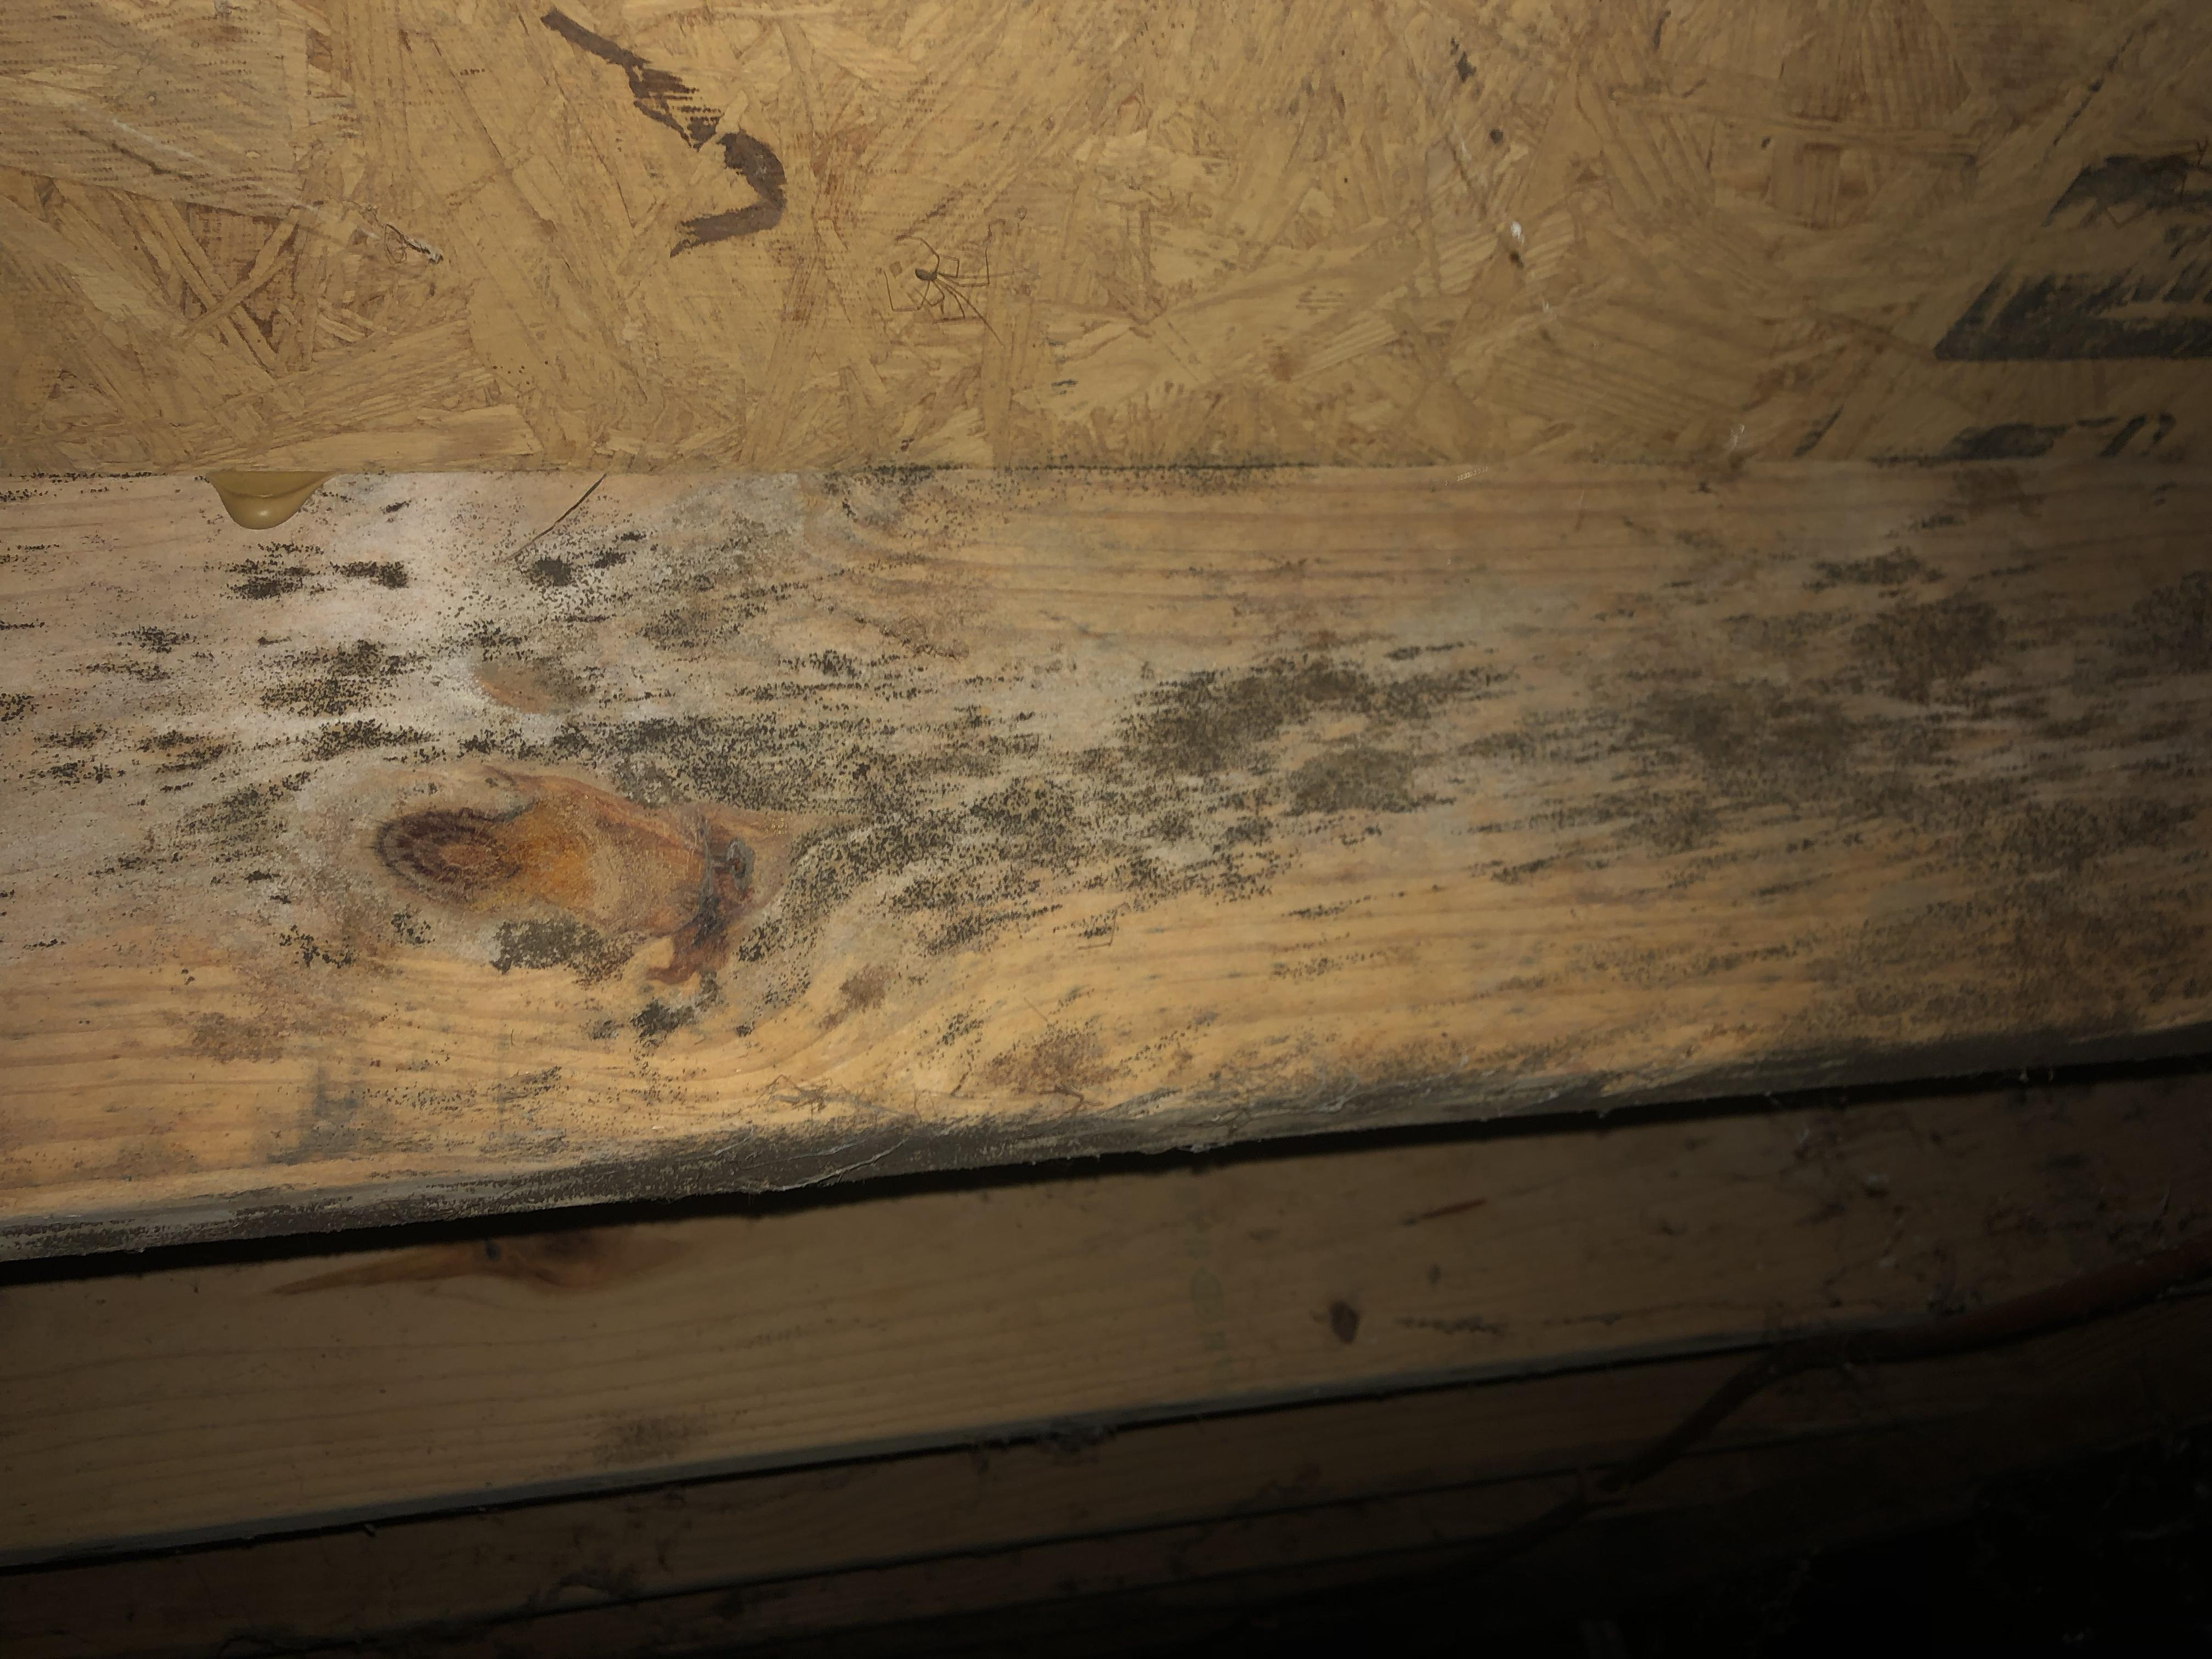 Mold found on the wooden floor support in the crawlspace